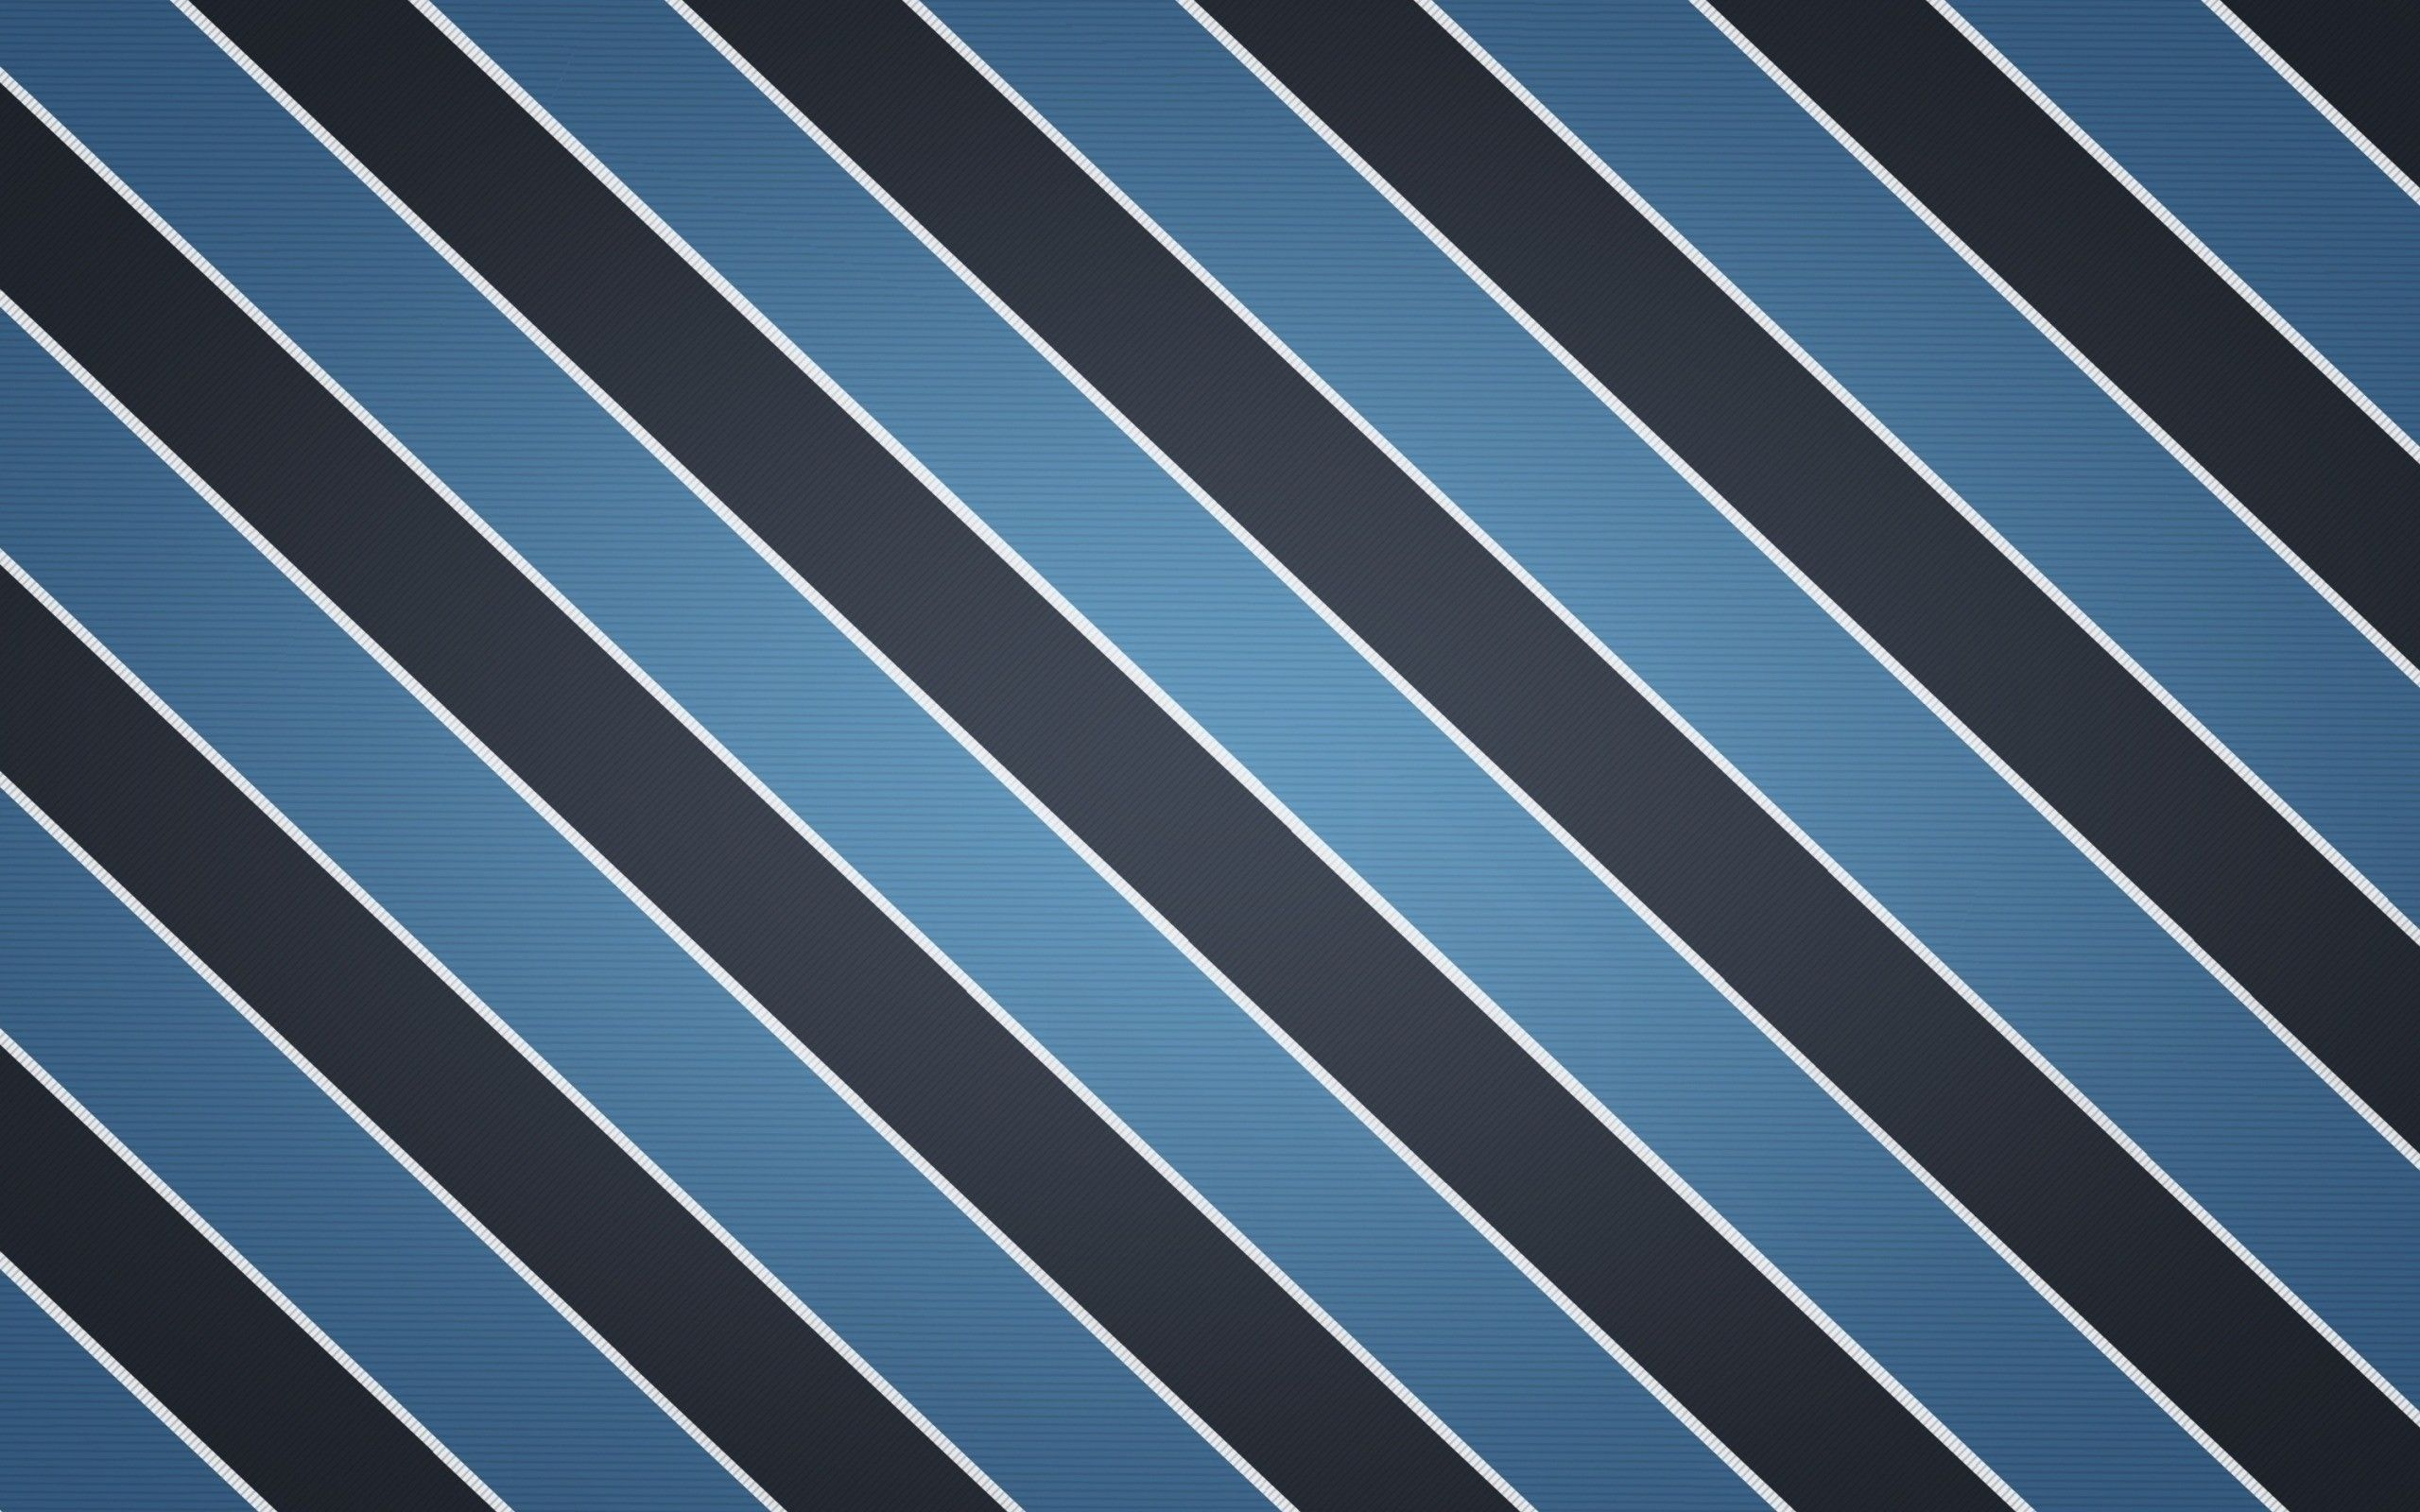 Hd wallpaper pattern - Download Pattern Textures Artwork Stripes Fresh New Wallpaper